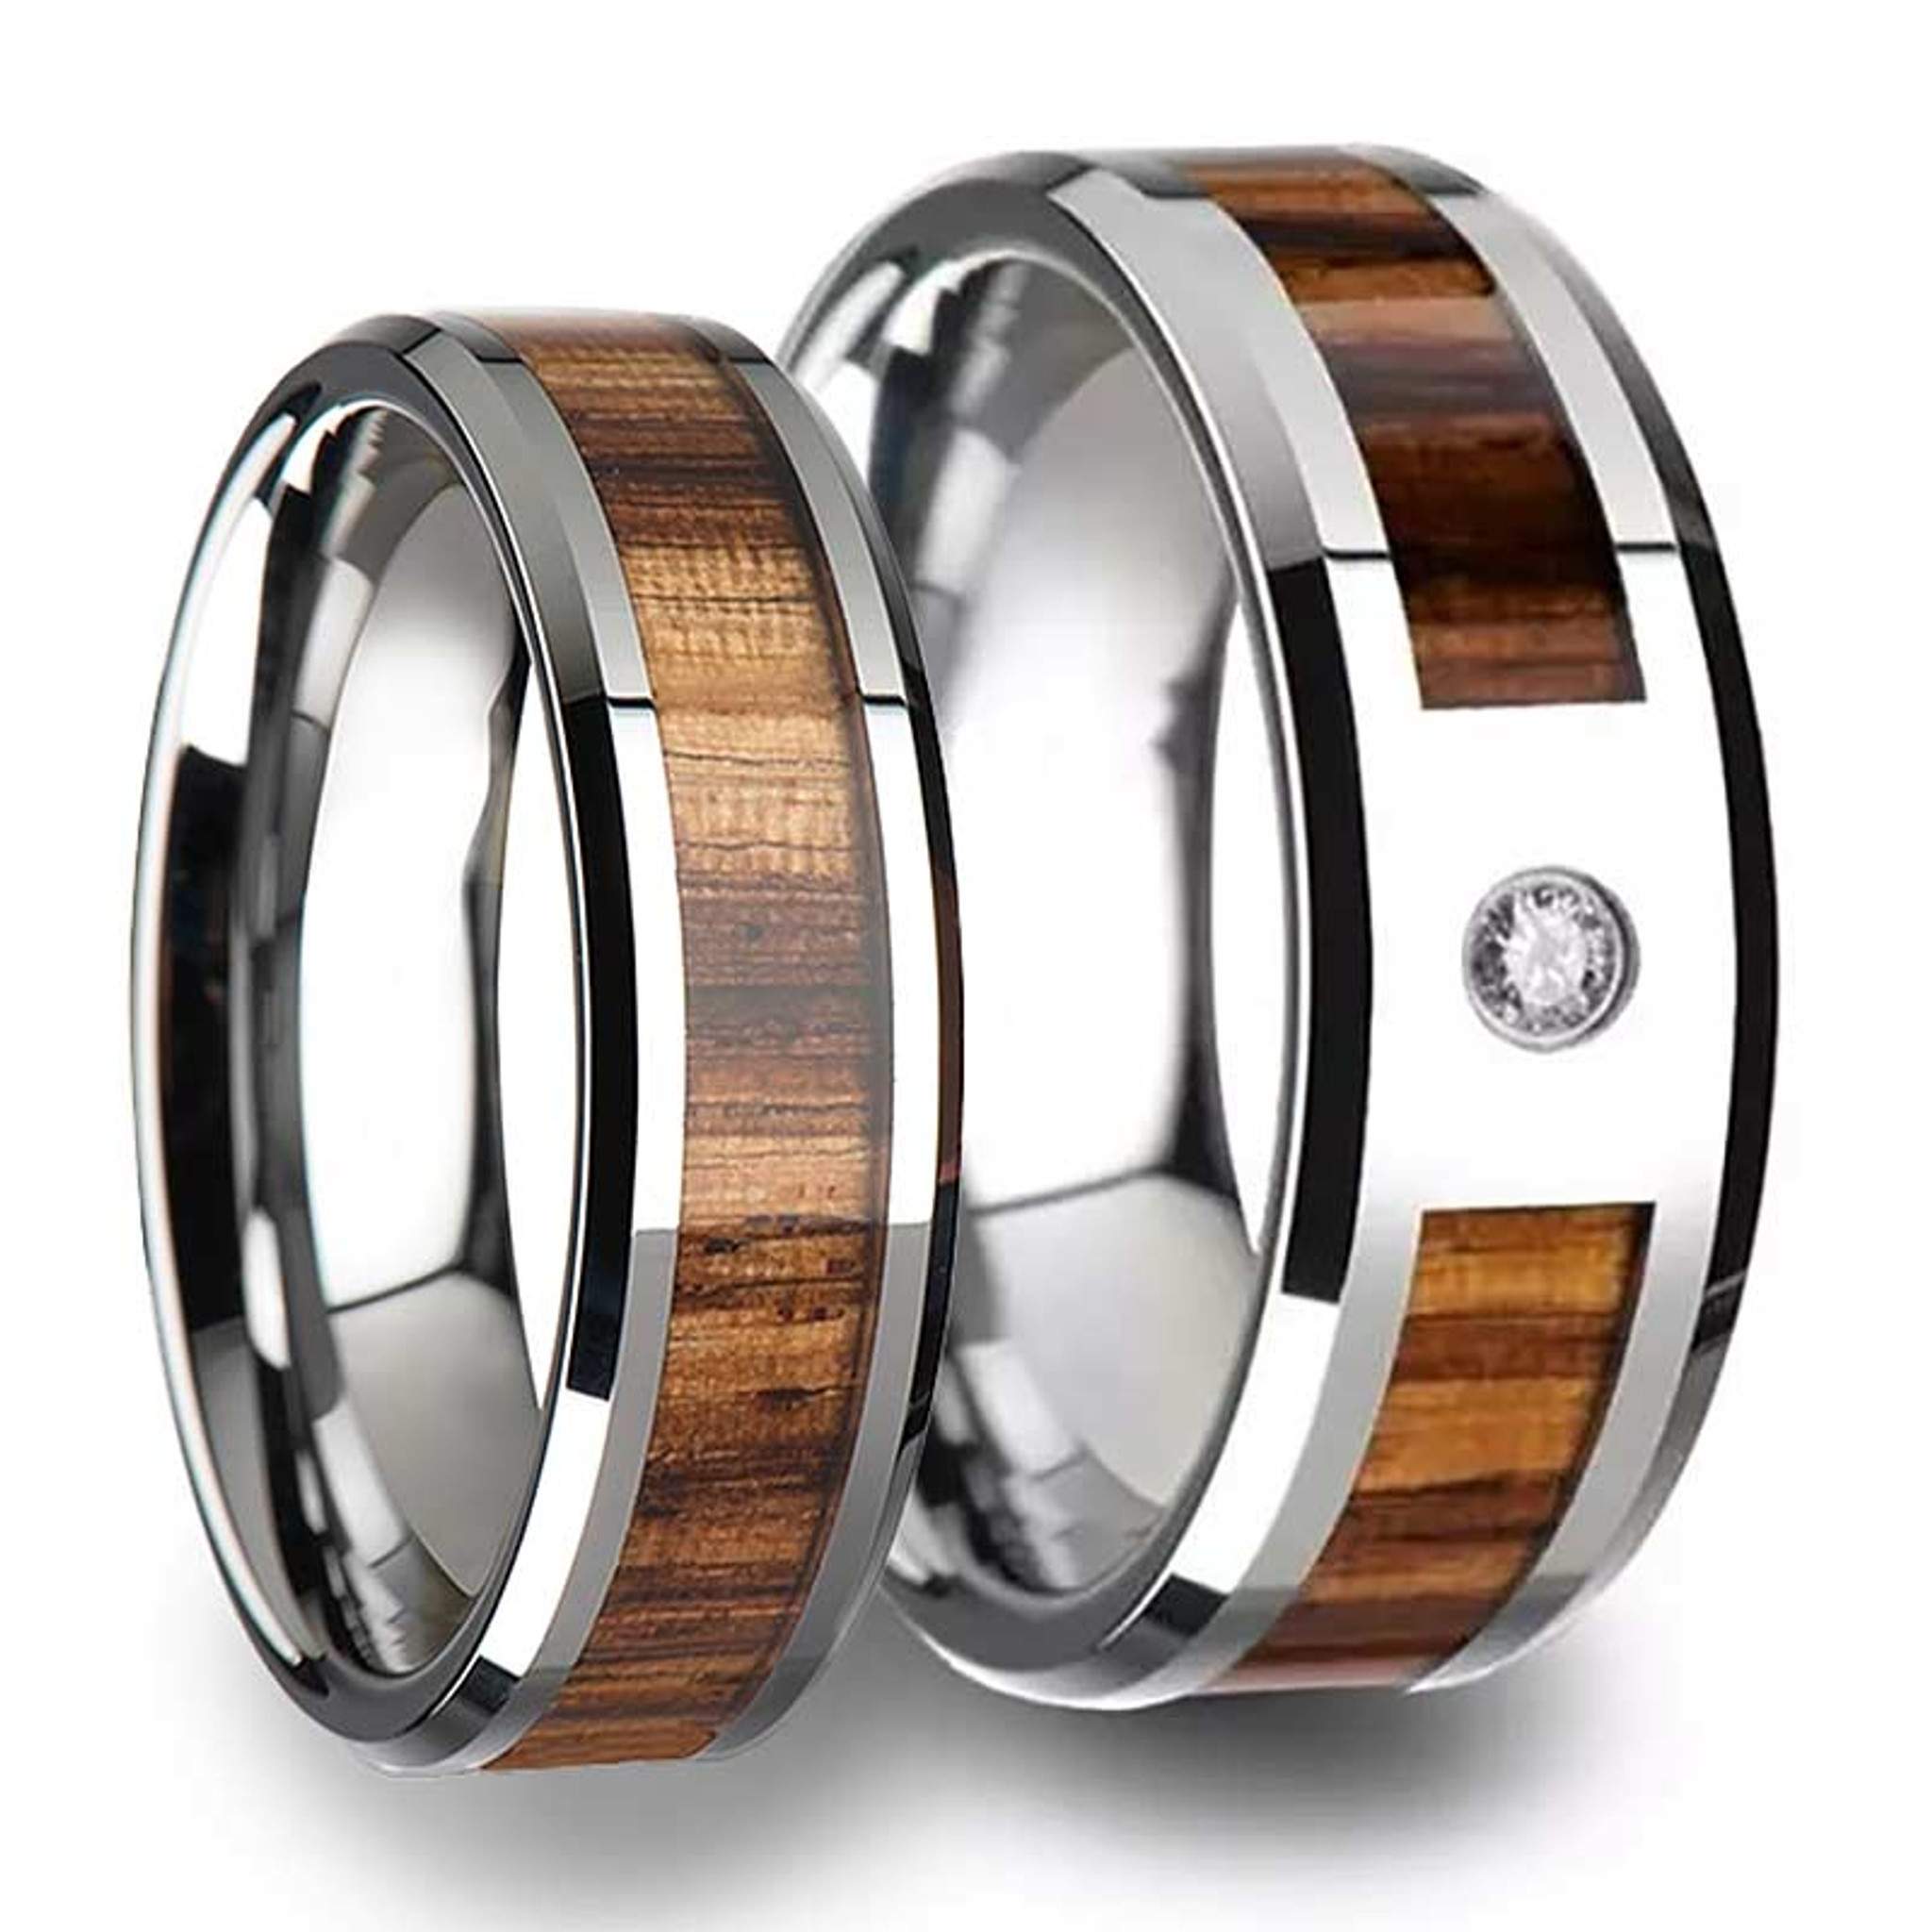 Zebra Wood Inlaid Tungsten Couple's Matching Wedding Band Set from Vansweden Jewelers